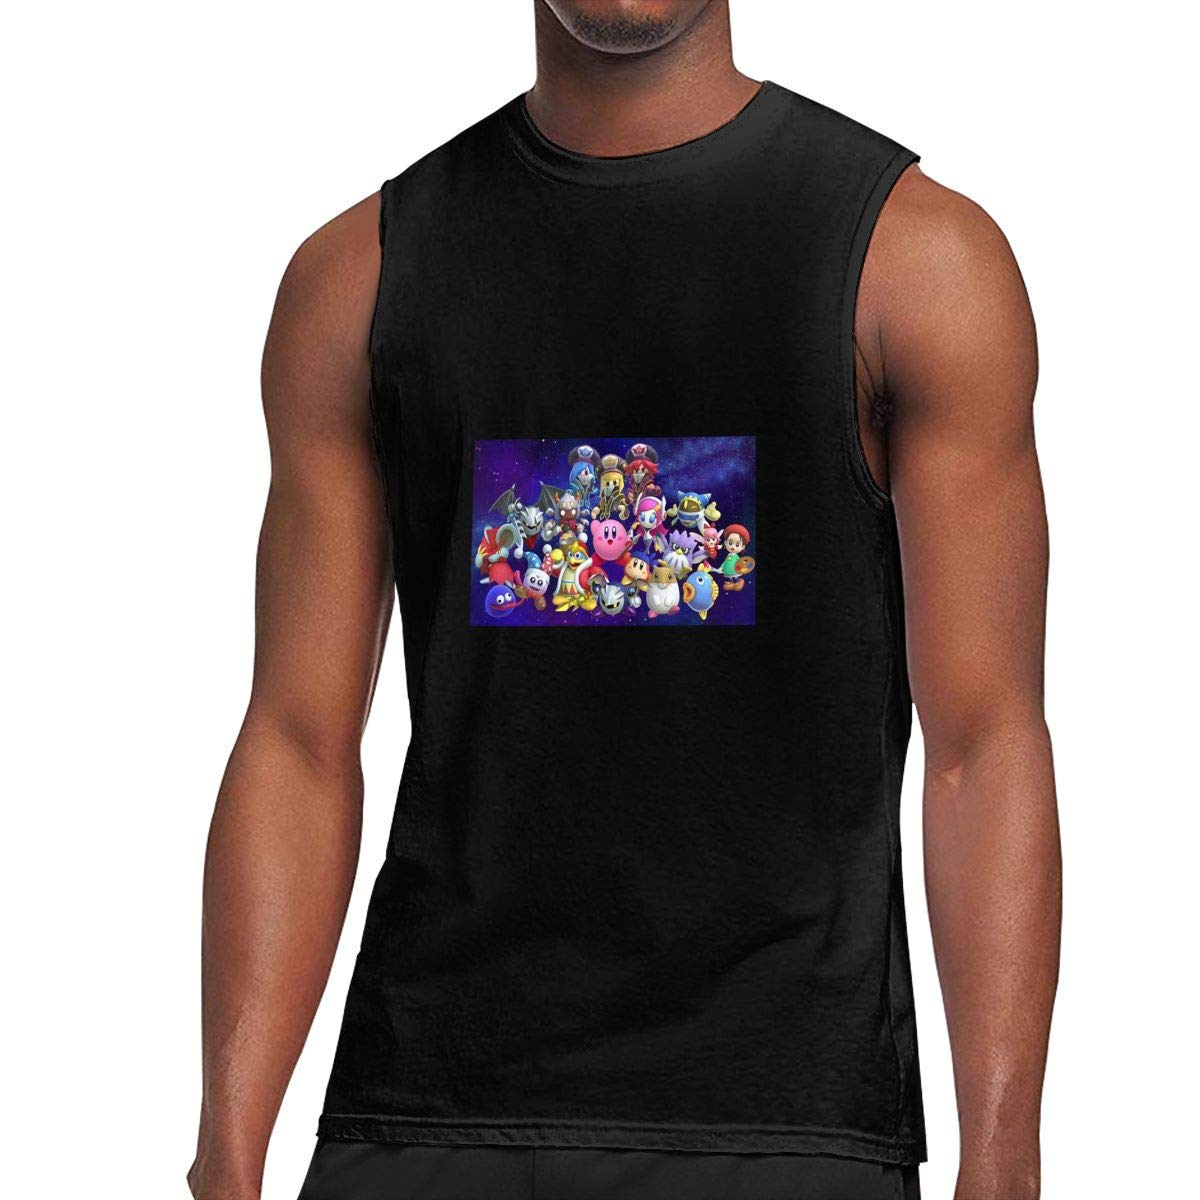 S Sleeveless T Shirts Kirby Workout Tank Tops Gym Bodybuilding Tshirts Black